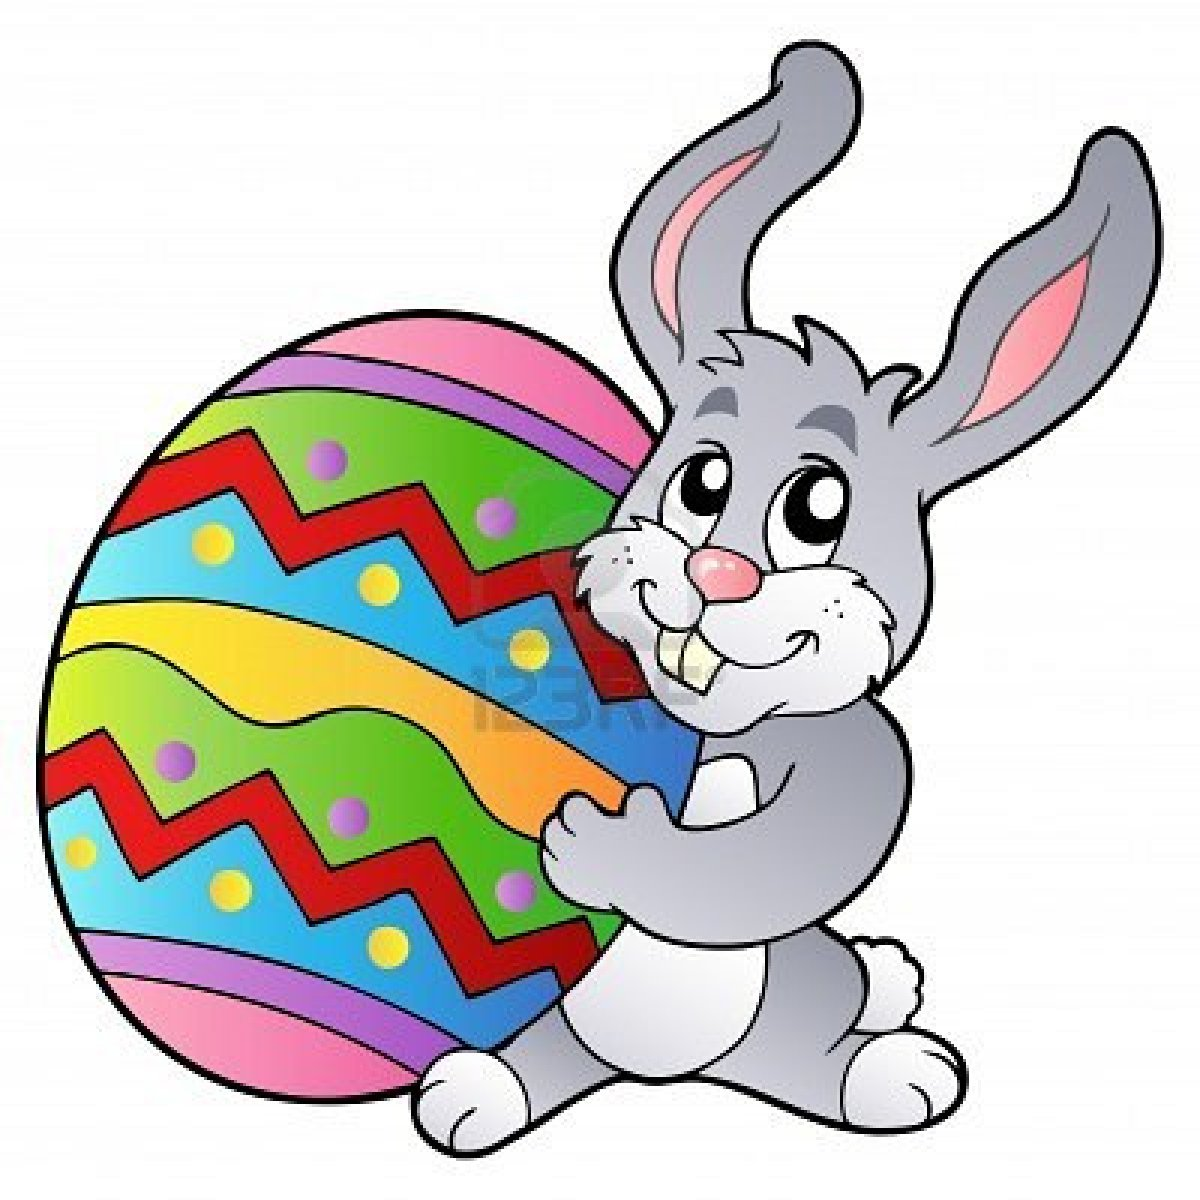 1200x1200 The Easter Bunny (Also Called The Easter Rabbit Or Easter Hare) Is